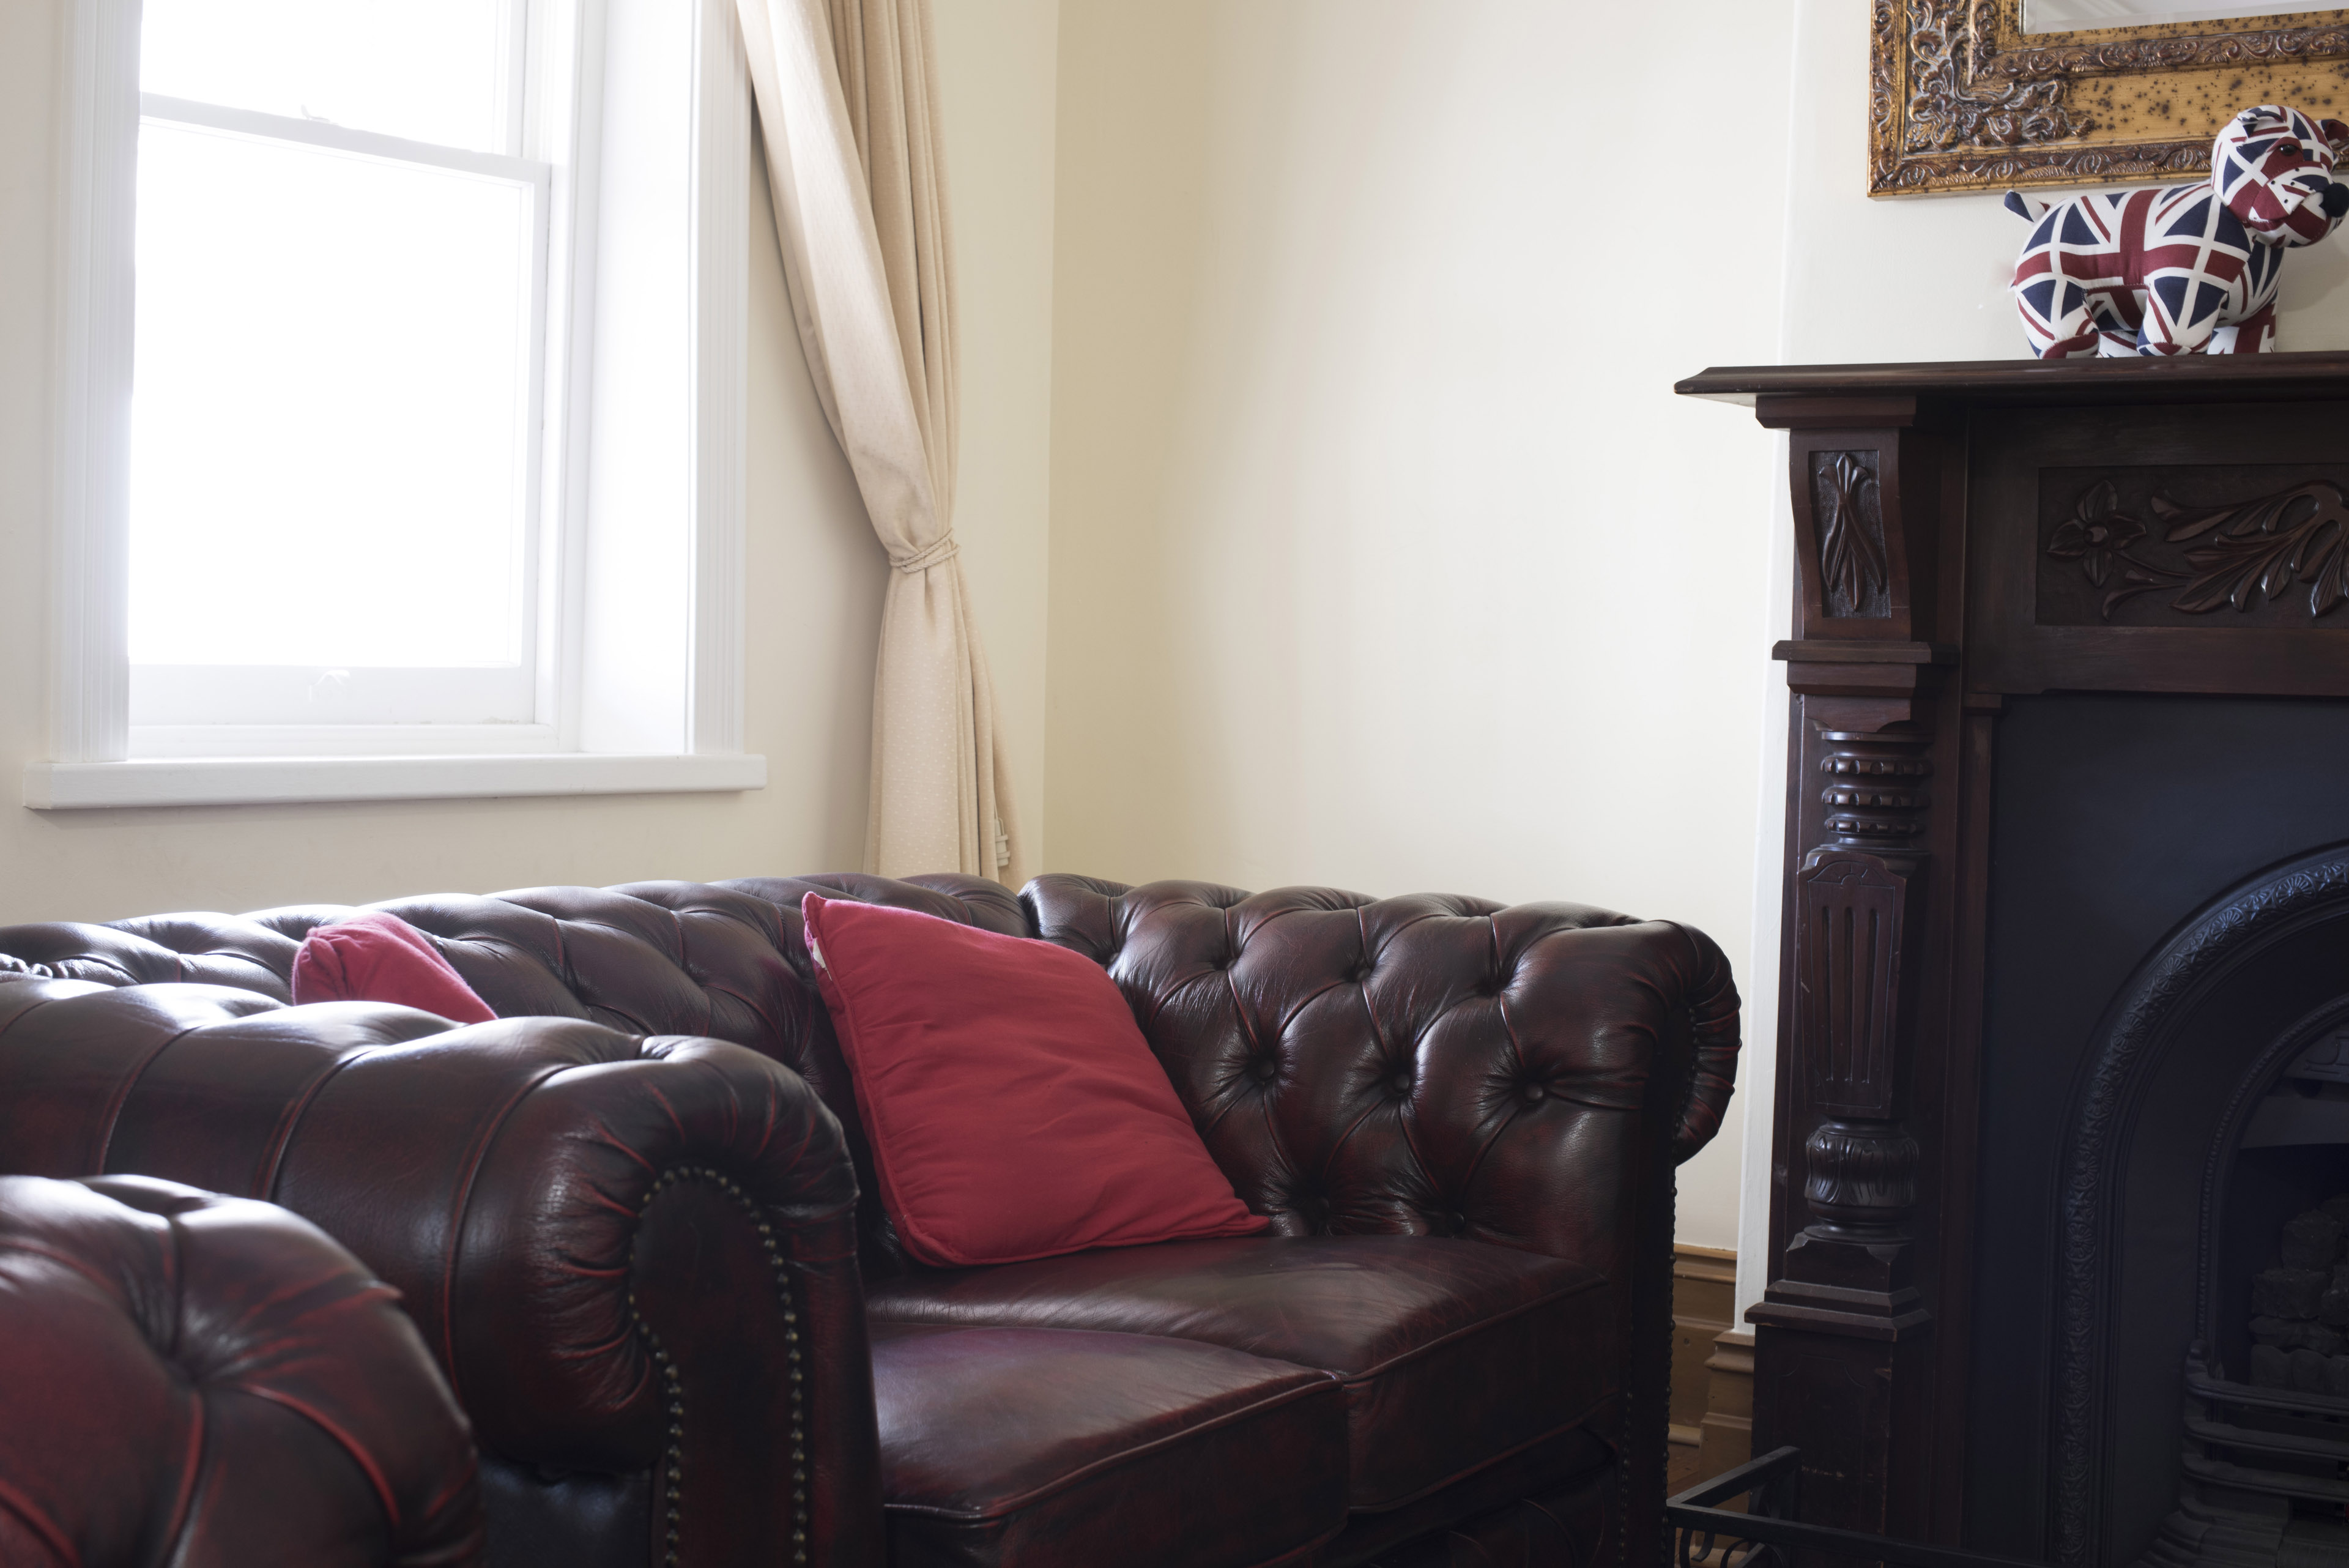 Image of leather Chesterfield armchair   Freebie.Photography